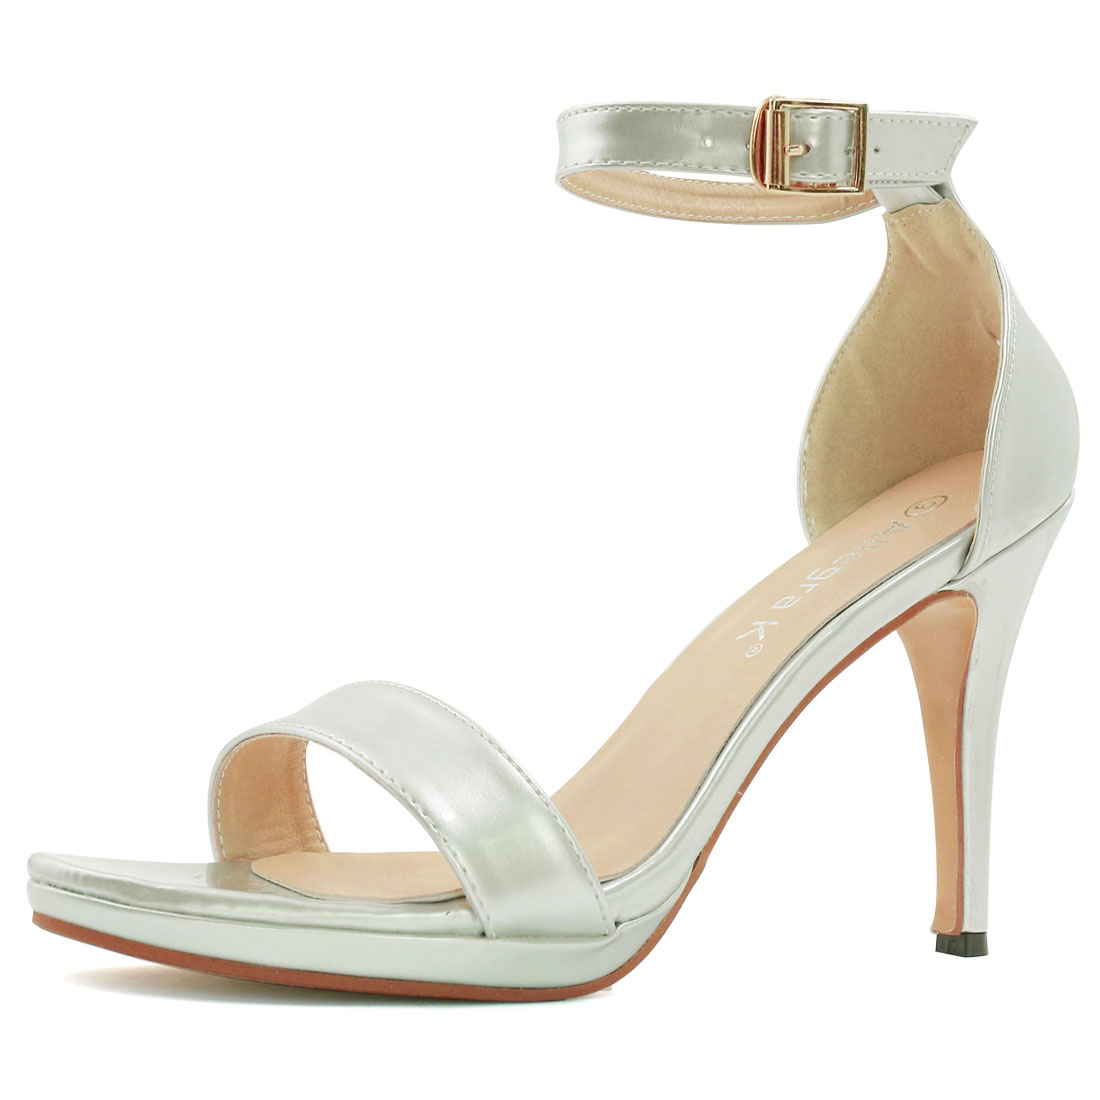 Woman Open Toe High Heel Metallic Ankle Strap Sandals Silver US 7